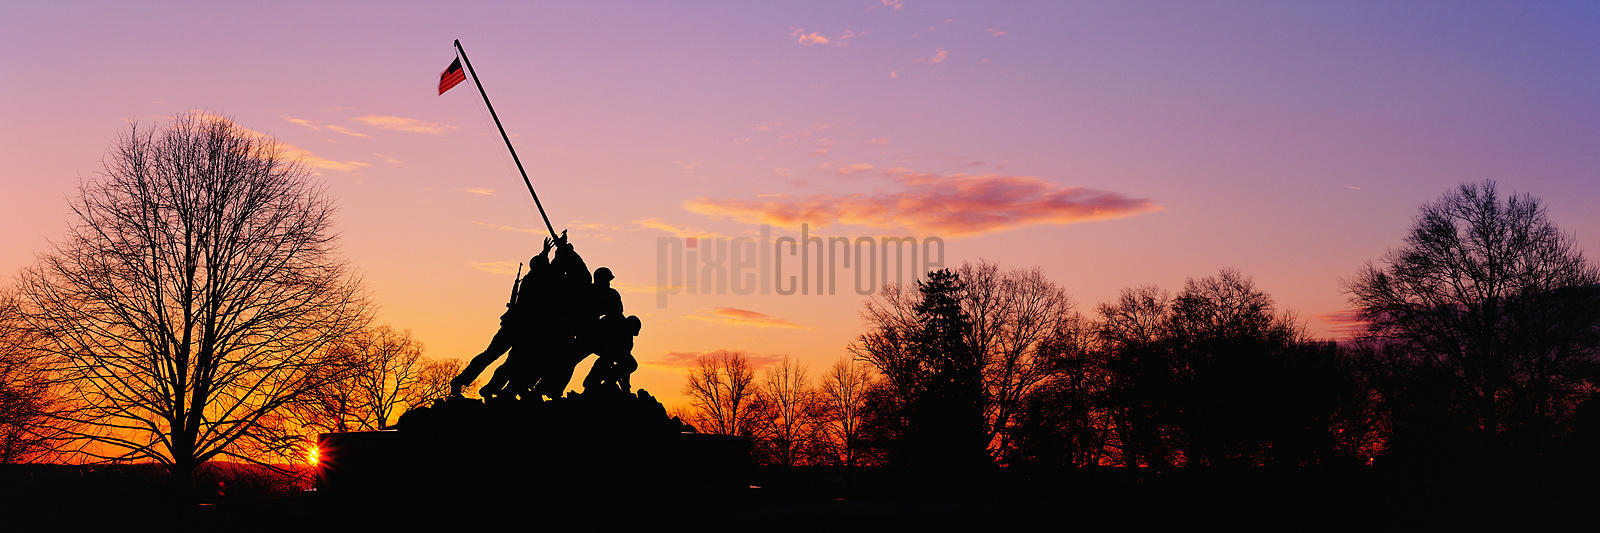 Iwo Jima Memorial at Sunrise